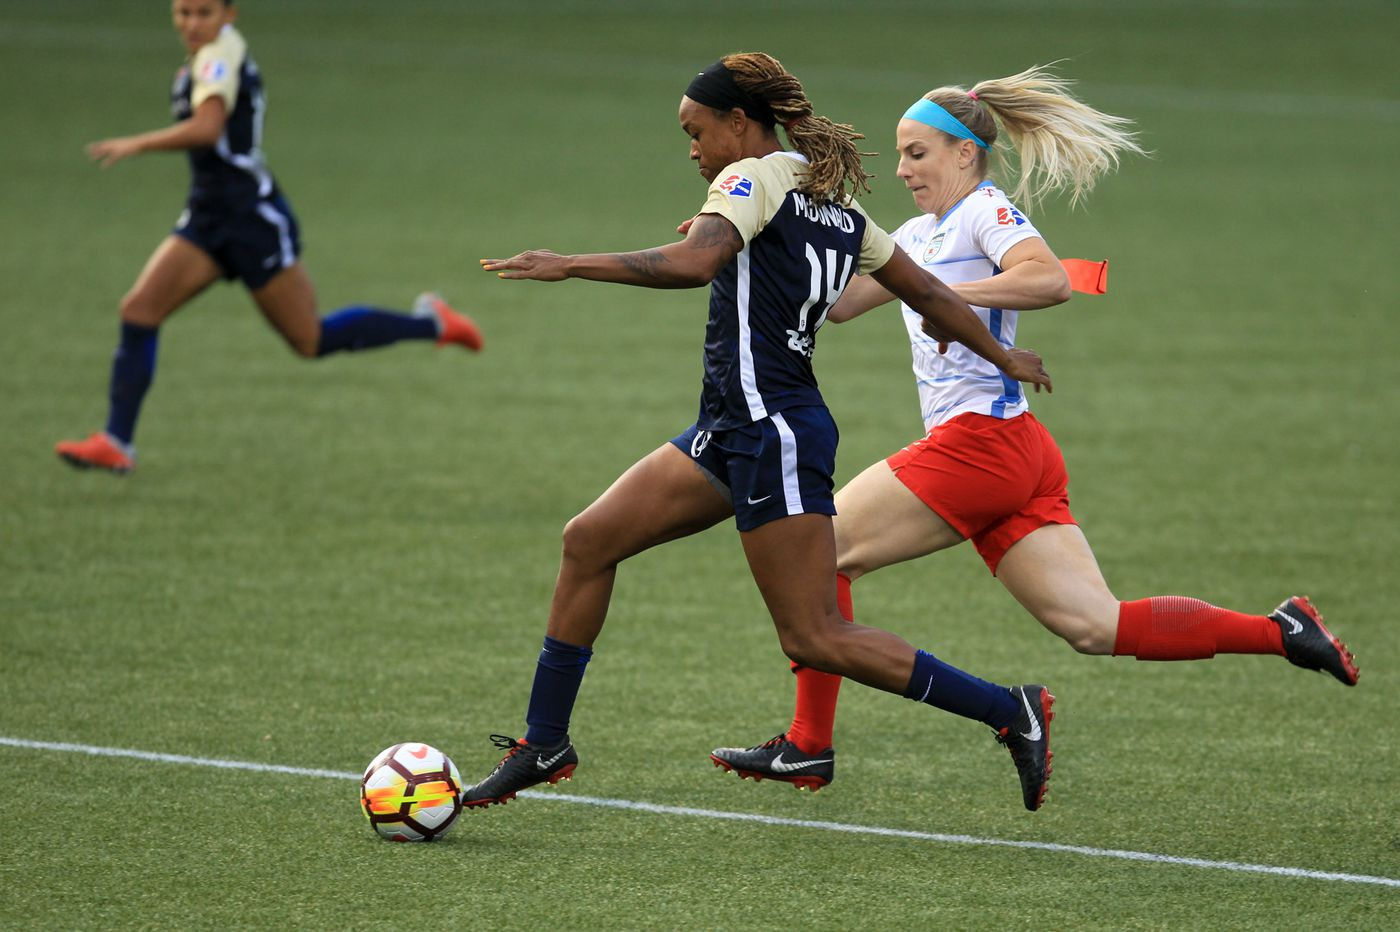 USWNT roster for games at Portugal and Scotland includes some surprising names: Danielle Colaprico and Jessica McDonald